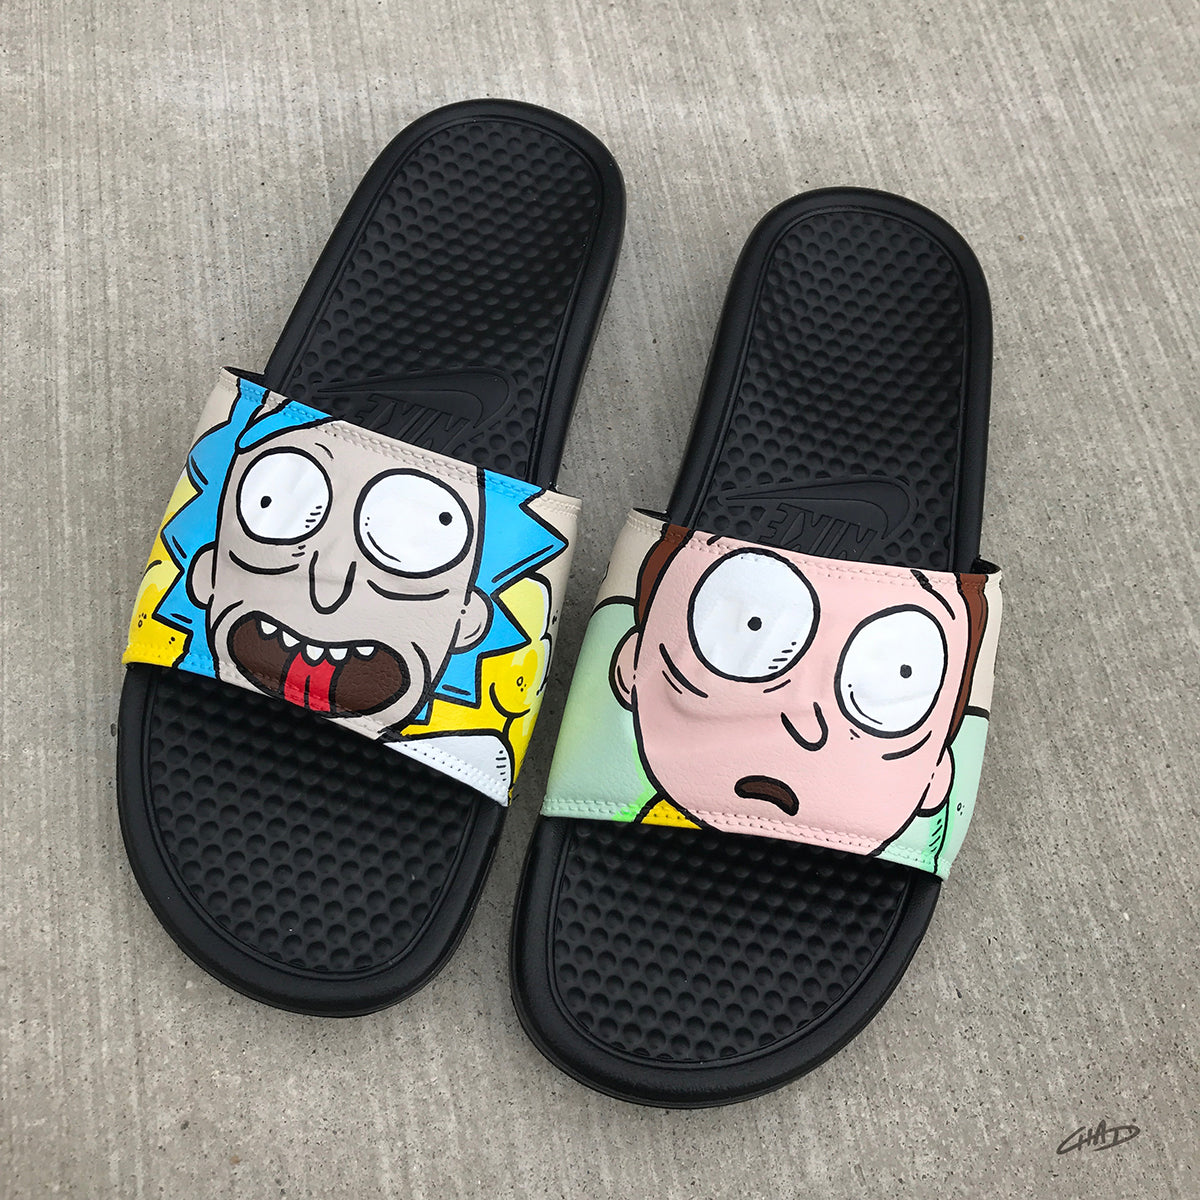 Rick and Morty Themed Hand Painted Nike Slides aka Sandals, Flip Flops